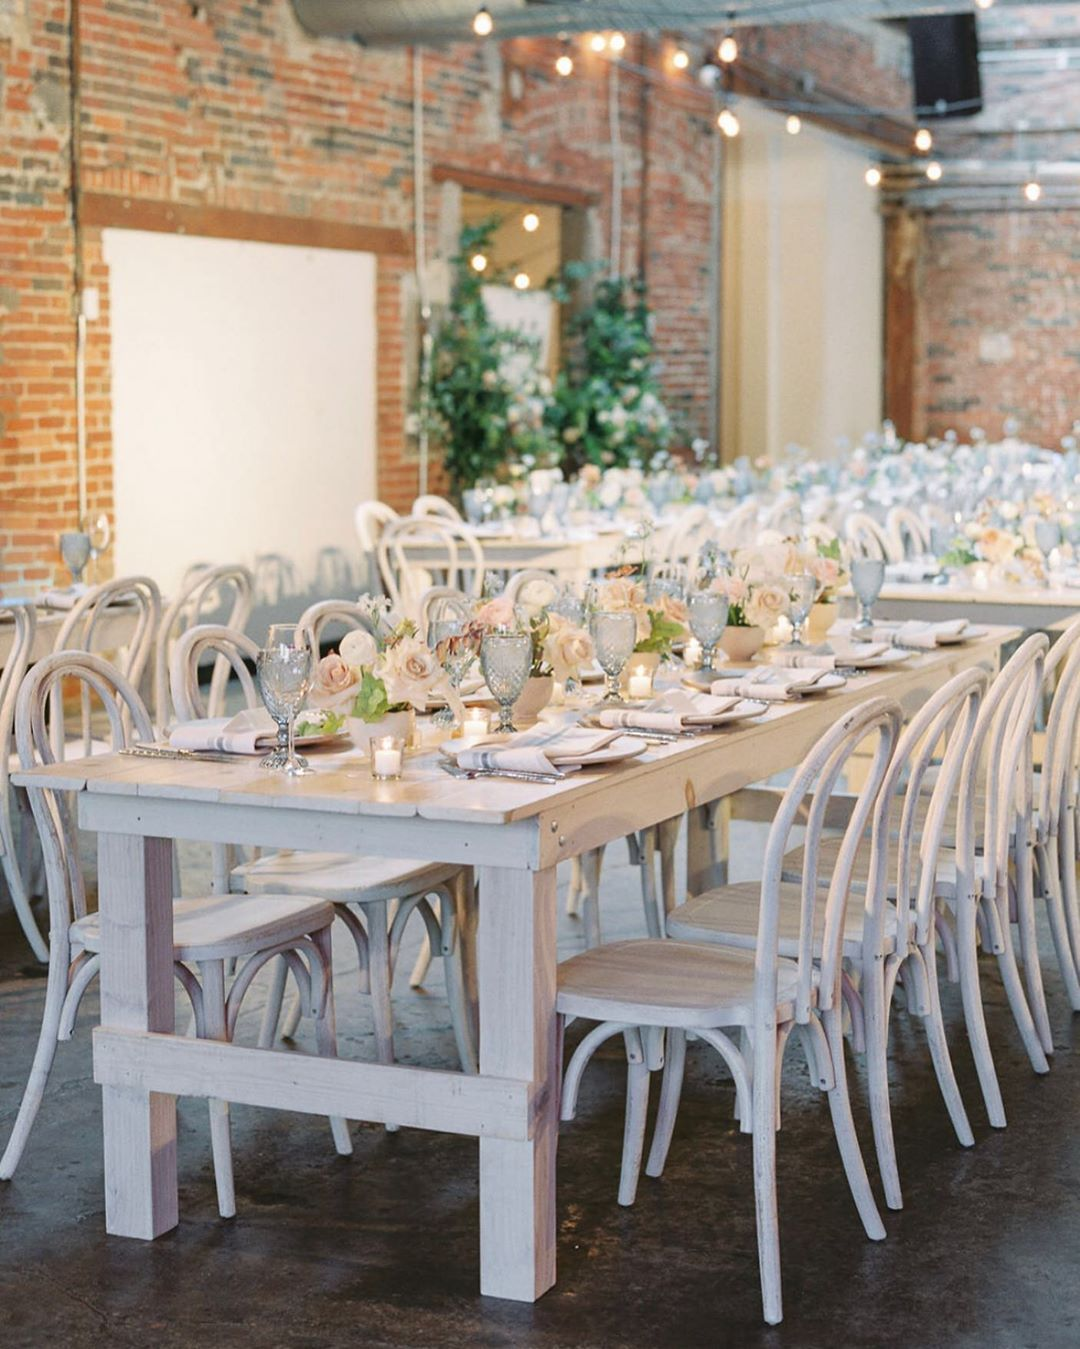 White Farm Table Wedding And Event Rentals In Columbus Ohio From Auburn Ivory Weddings Weddingrentals Weddingtables Farm Table Farm Table Wedding Table